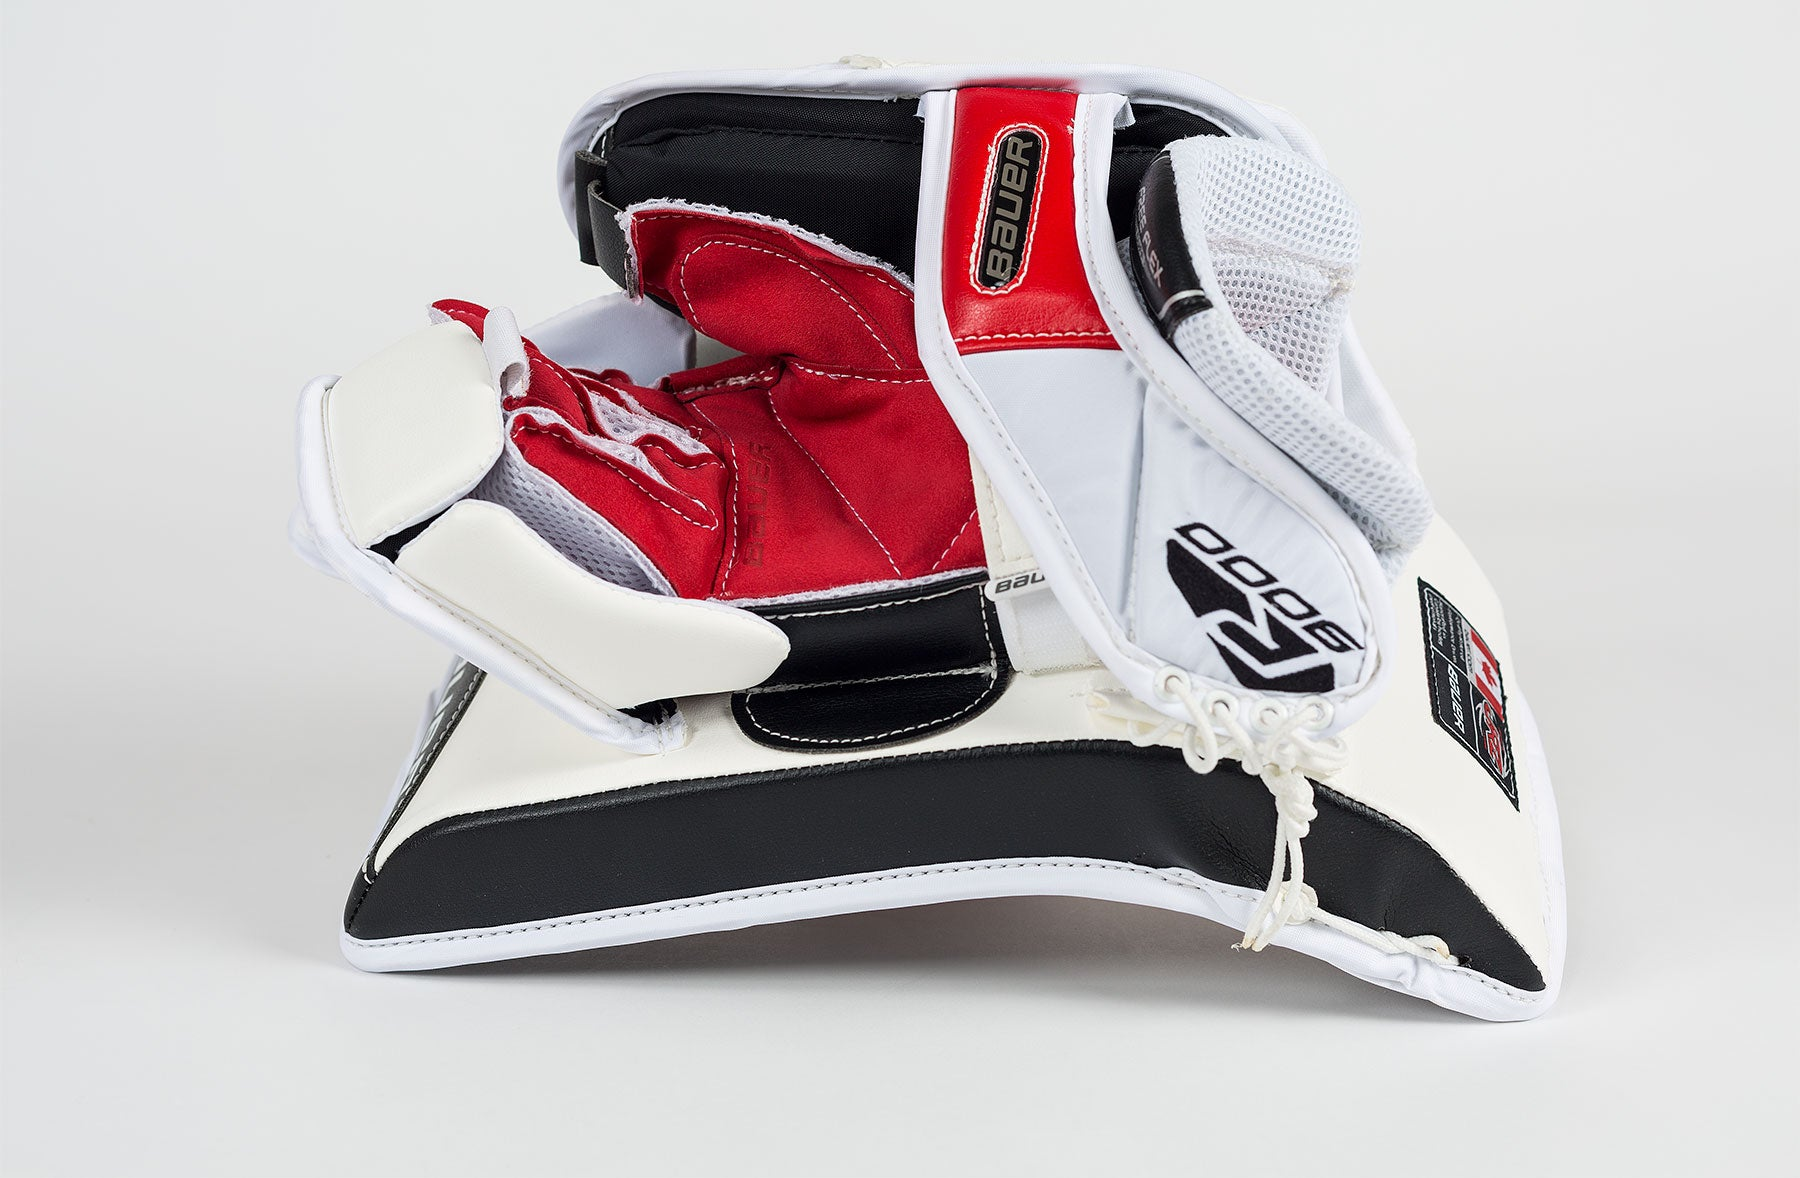 Bauer 9000 blocker